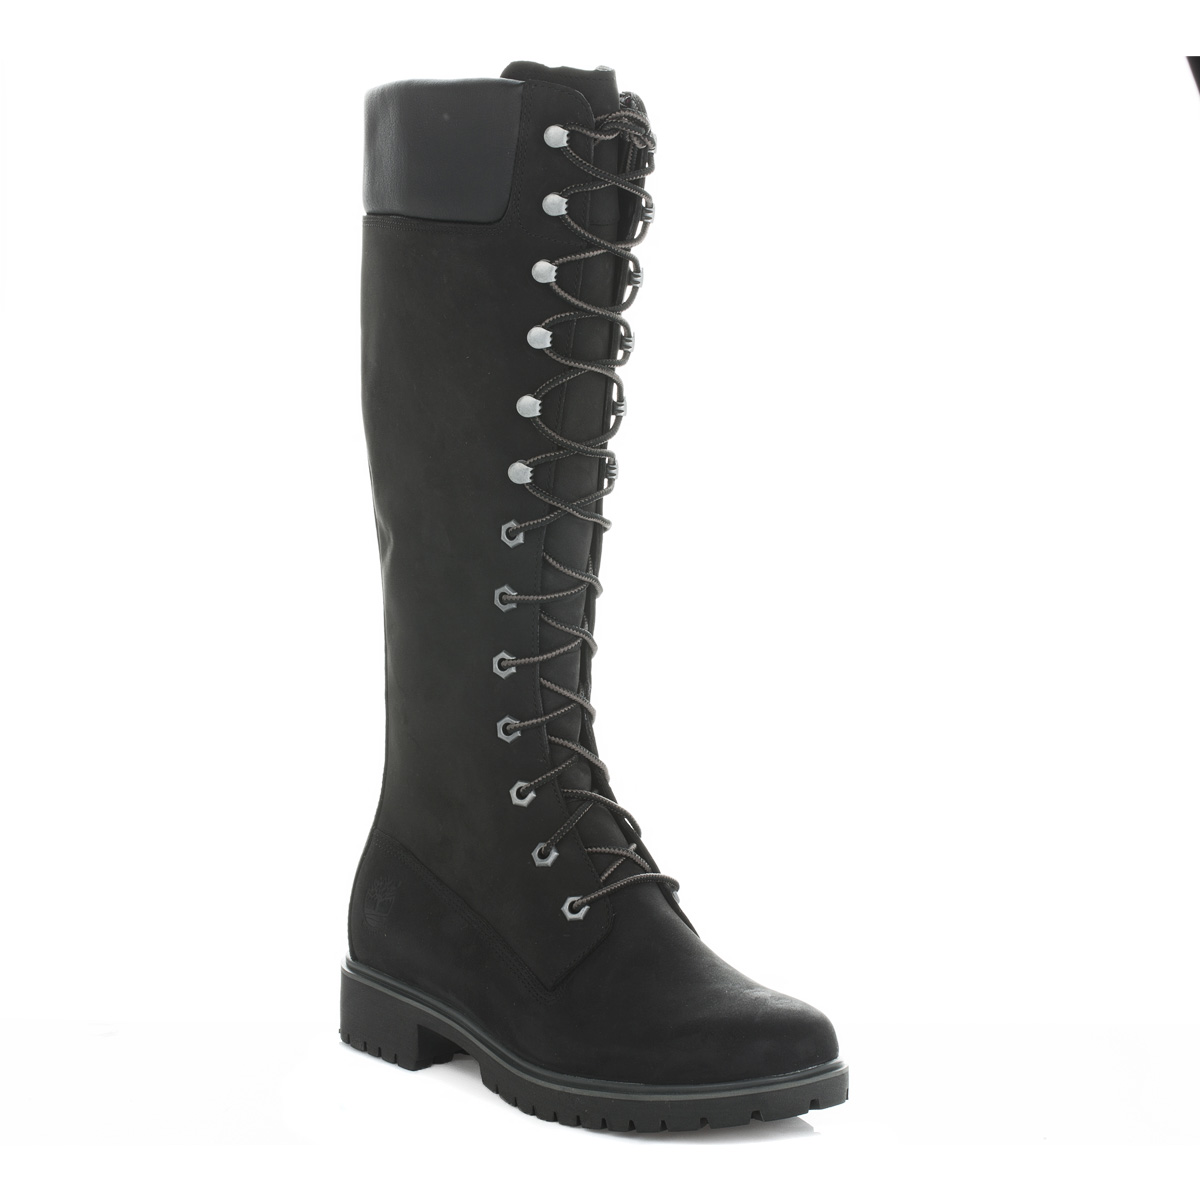 785ab8aa525b Details about Timberland Womens Ladies Lace Up Black Premium 14 Inch Tall  Boots Shoes C8167R